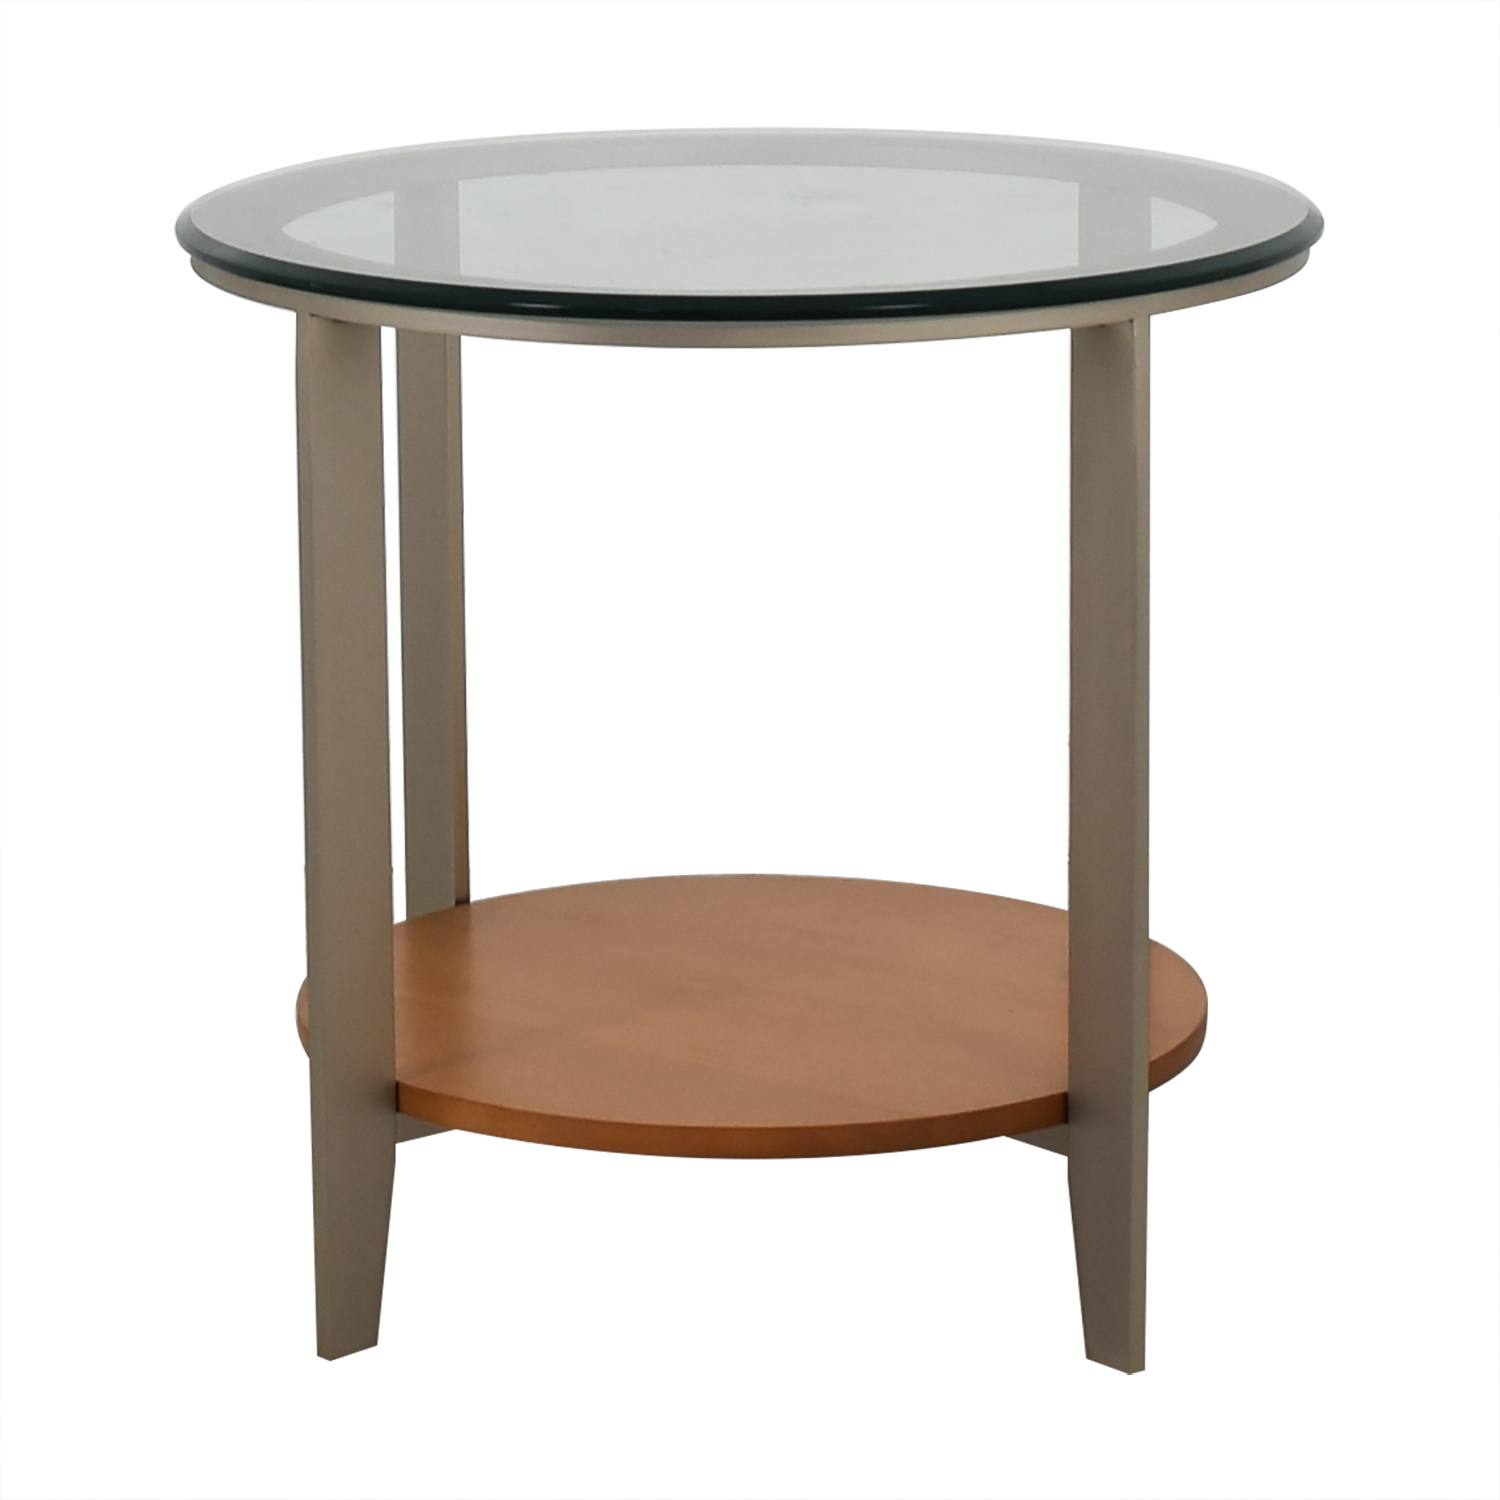 off ethan allen round glass and wood end table side with shelve black pallet coffee inch tall console furniture row address lamp magazine rack diy log ashley scarlett sofa